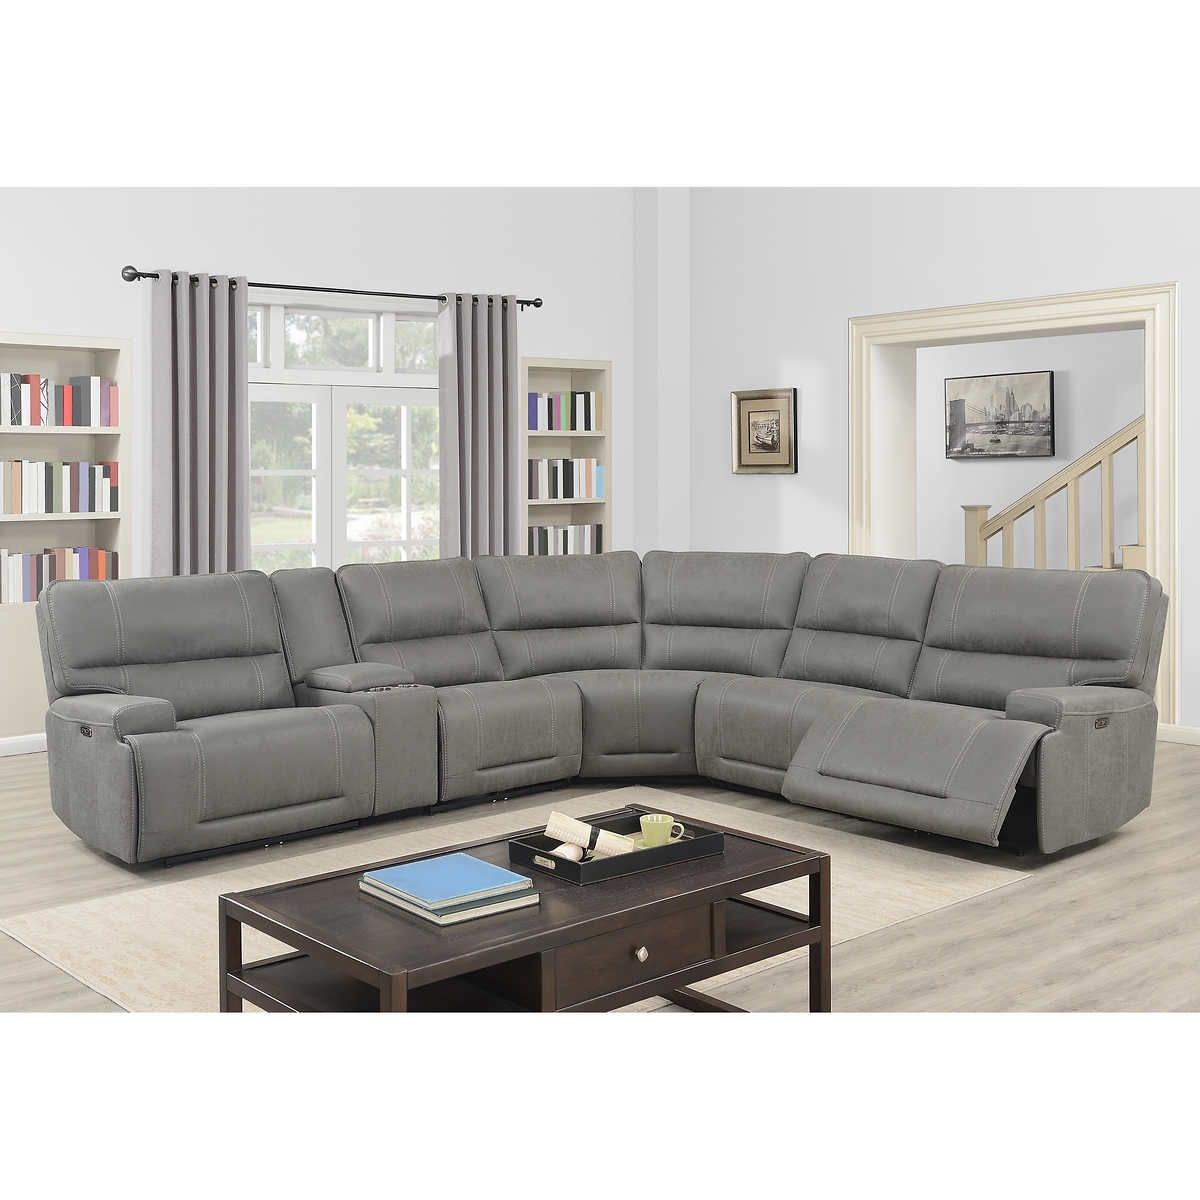 Pin By Melissia Buckhalter Honore On Home Renovations In 2020 Reclining Sectional Power Recliners Power Reclining Sectional Sofa